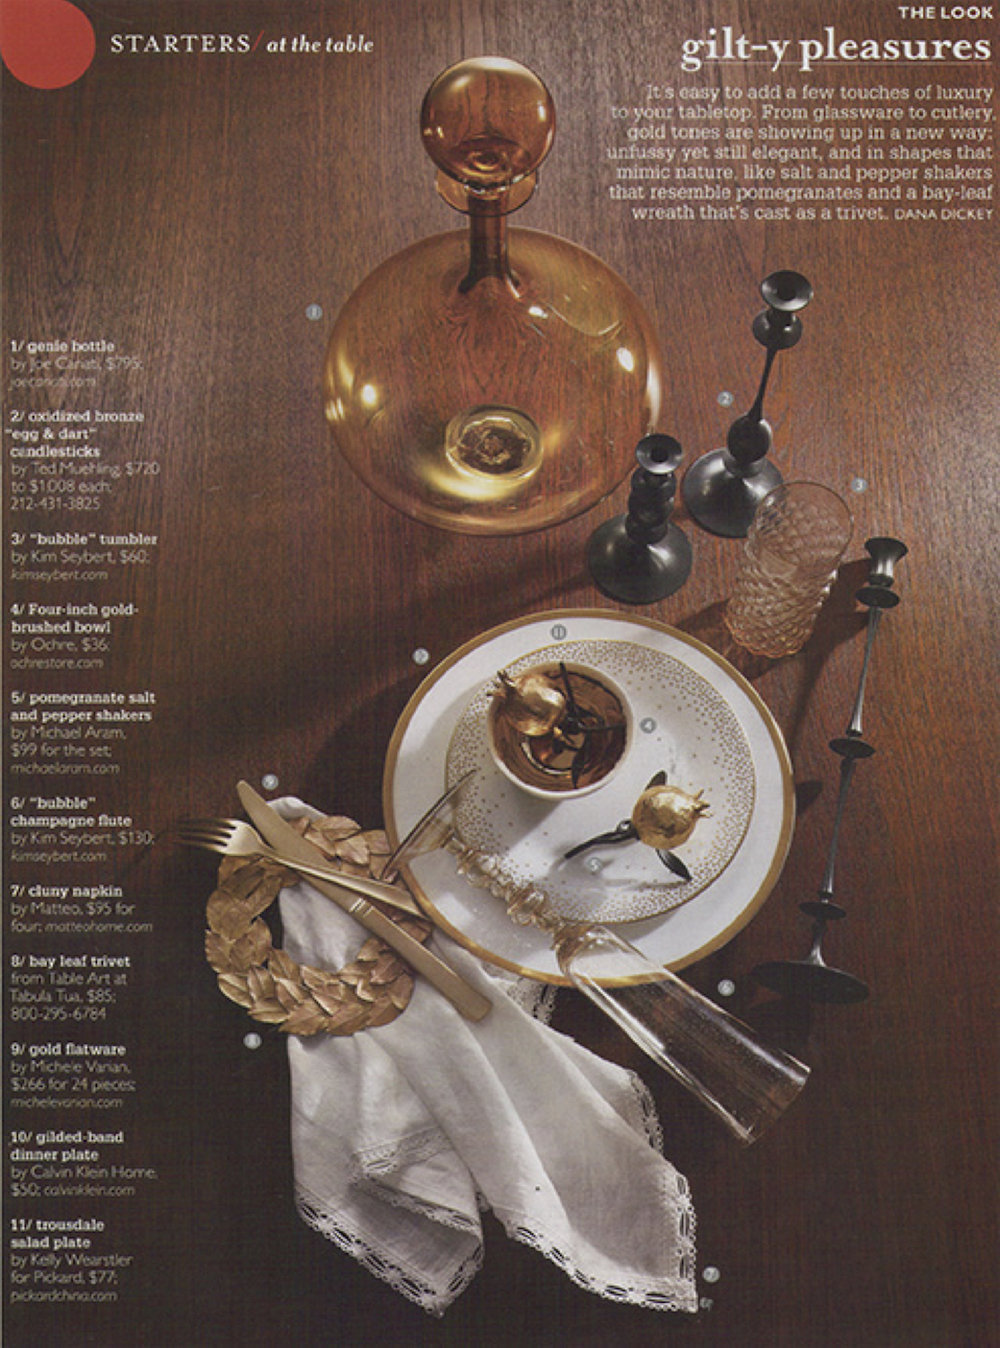 bon_appetit_dec_10_inside copy 2.jpg